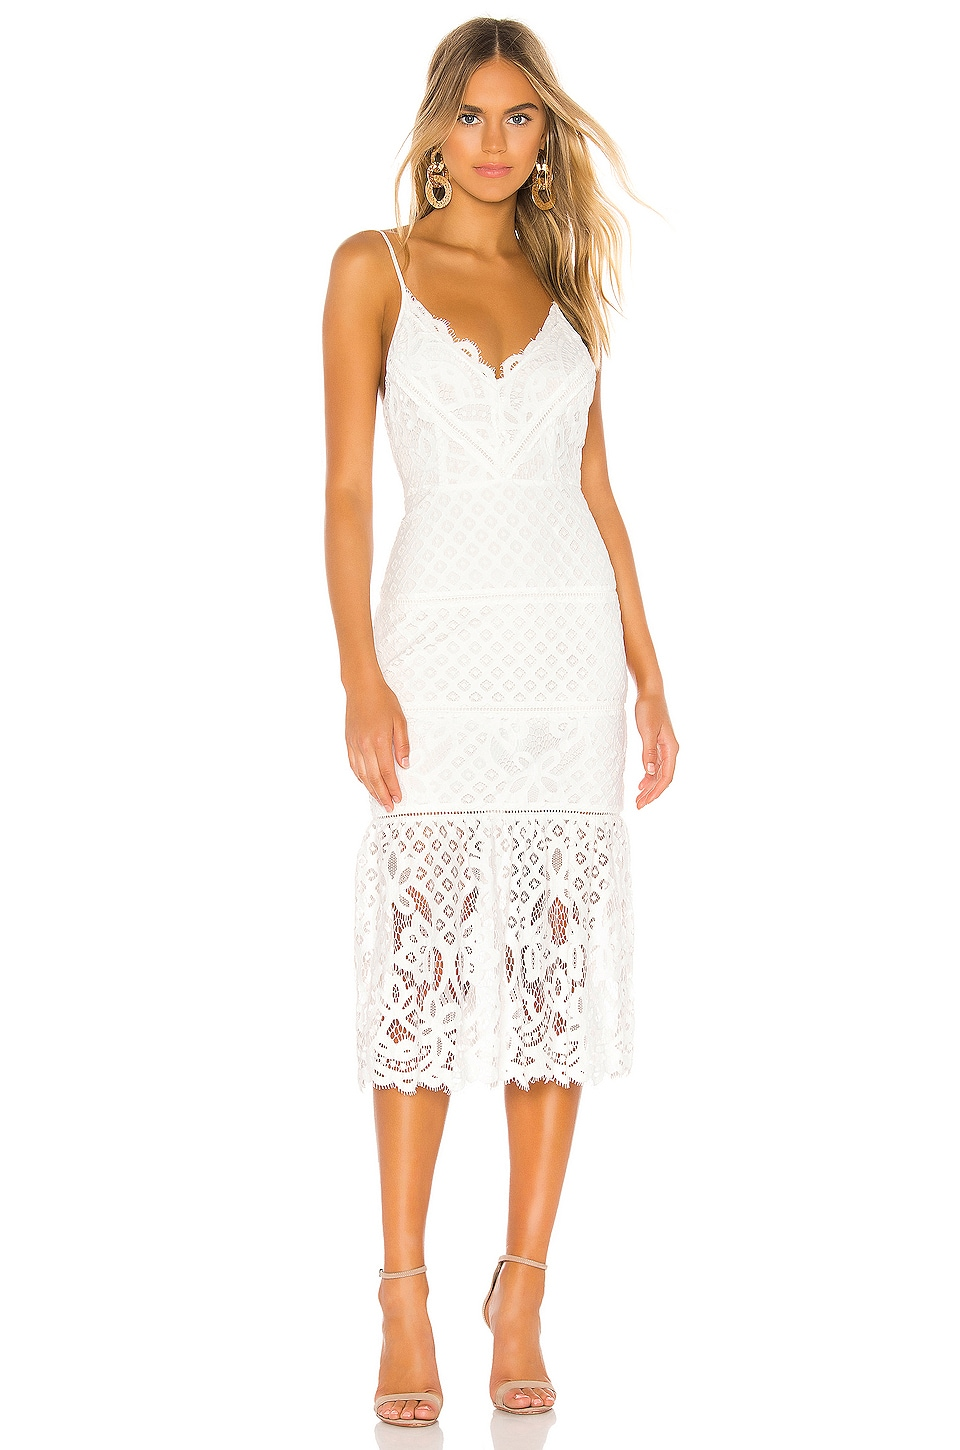 Lovers + Friends Tilly Midi Dress in White